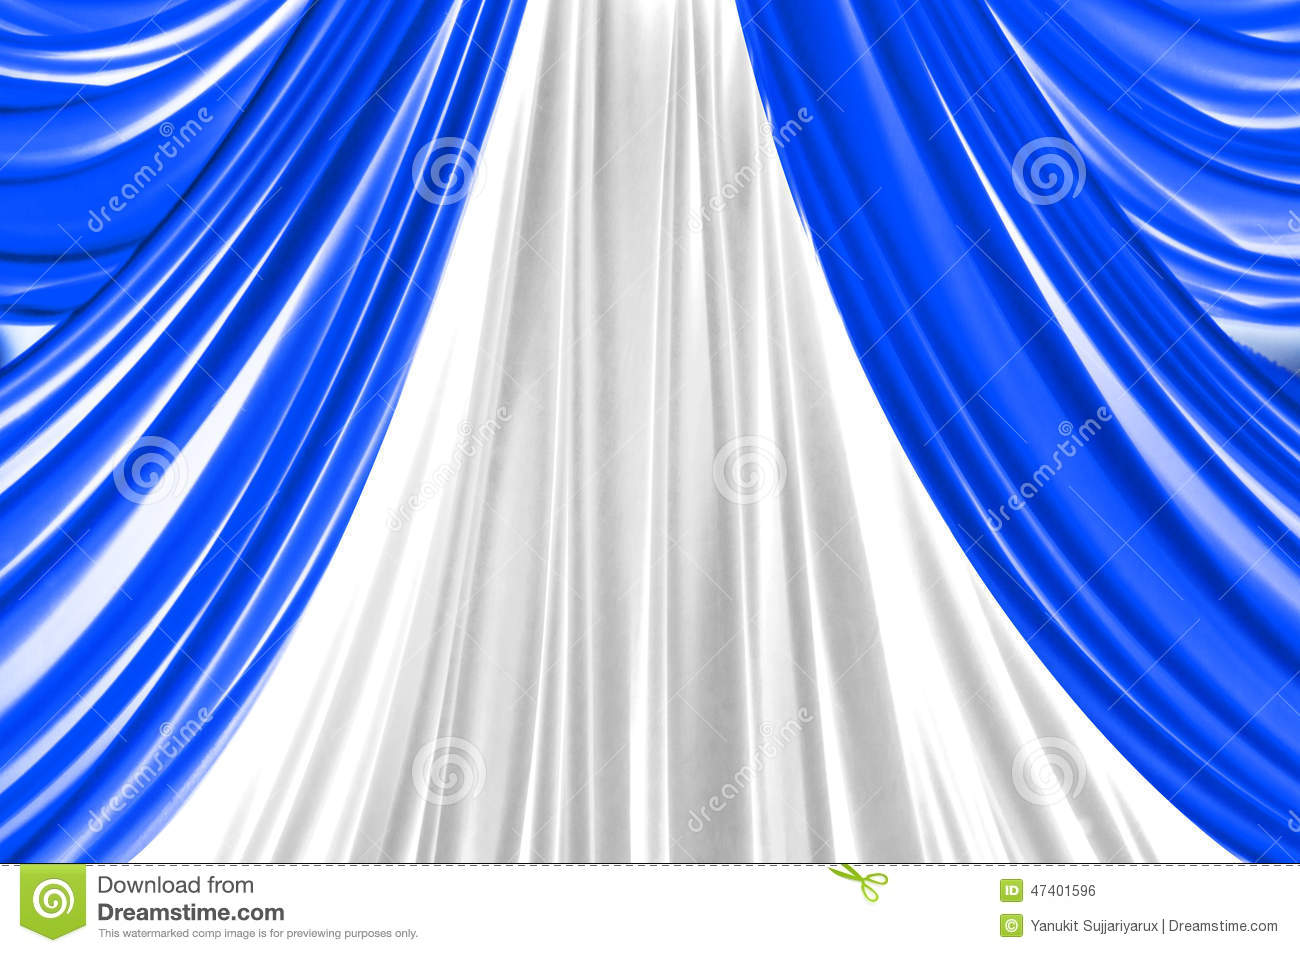 Bl blue stage curtains background - Blue And White Curtain On Stage Royalty Free Stock Image